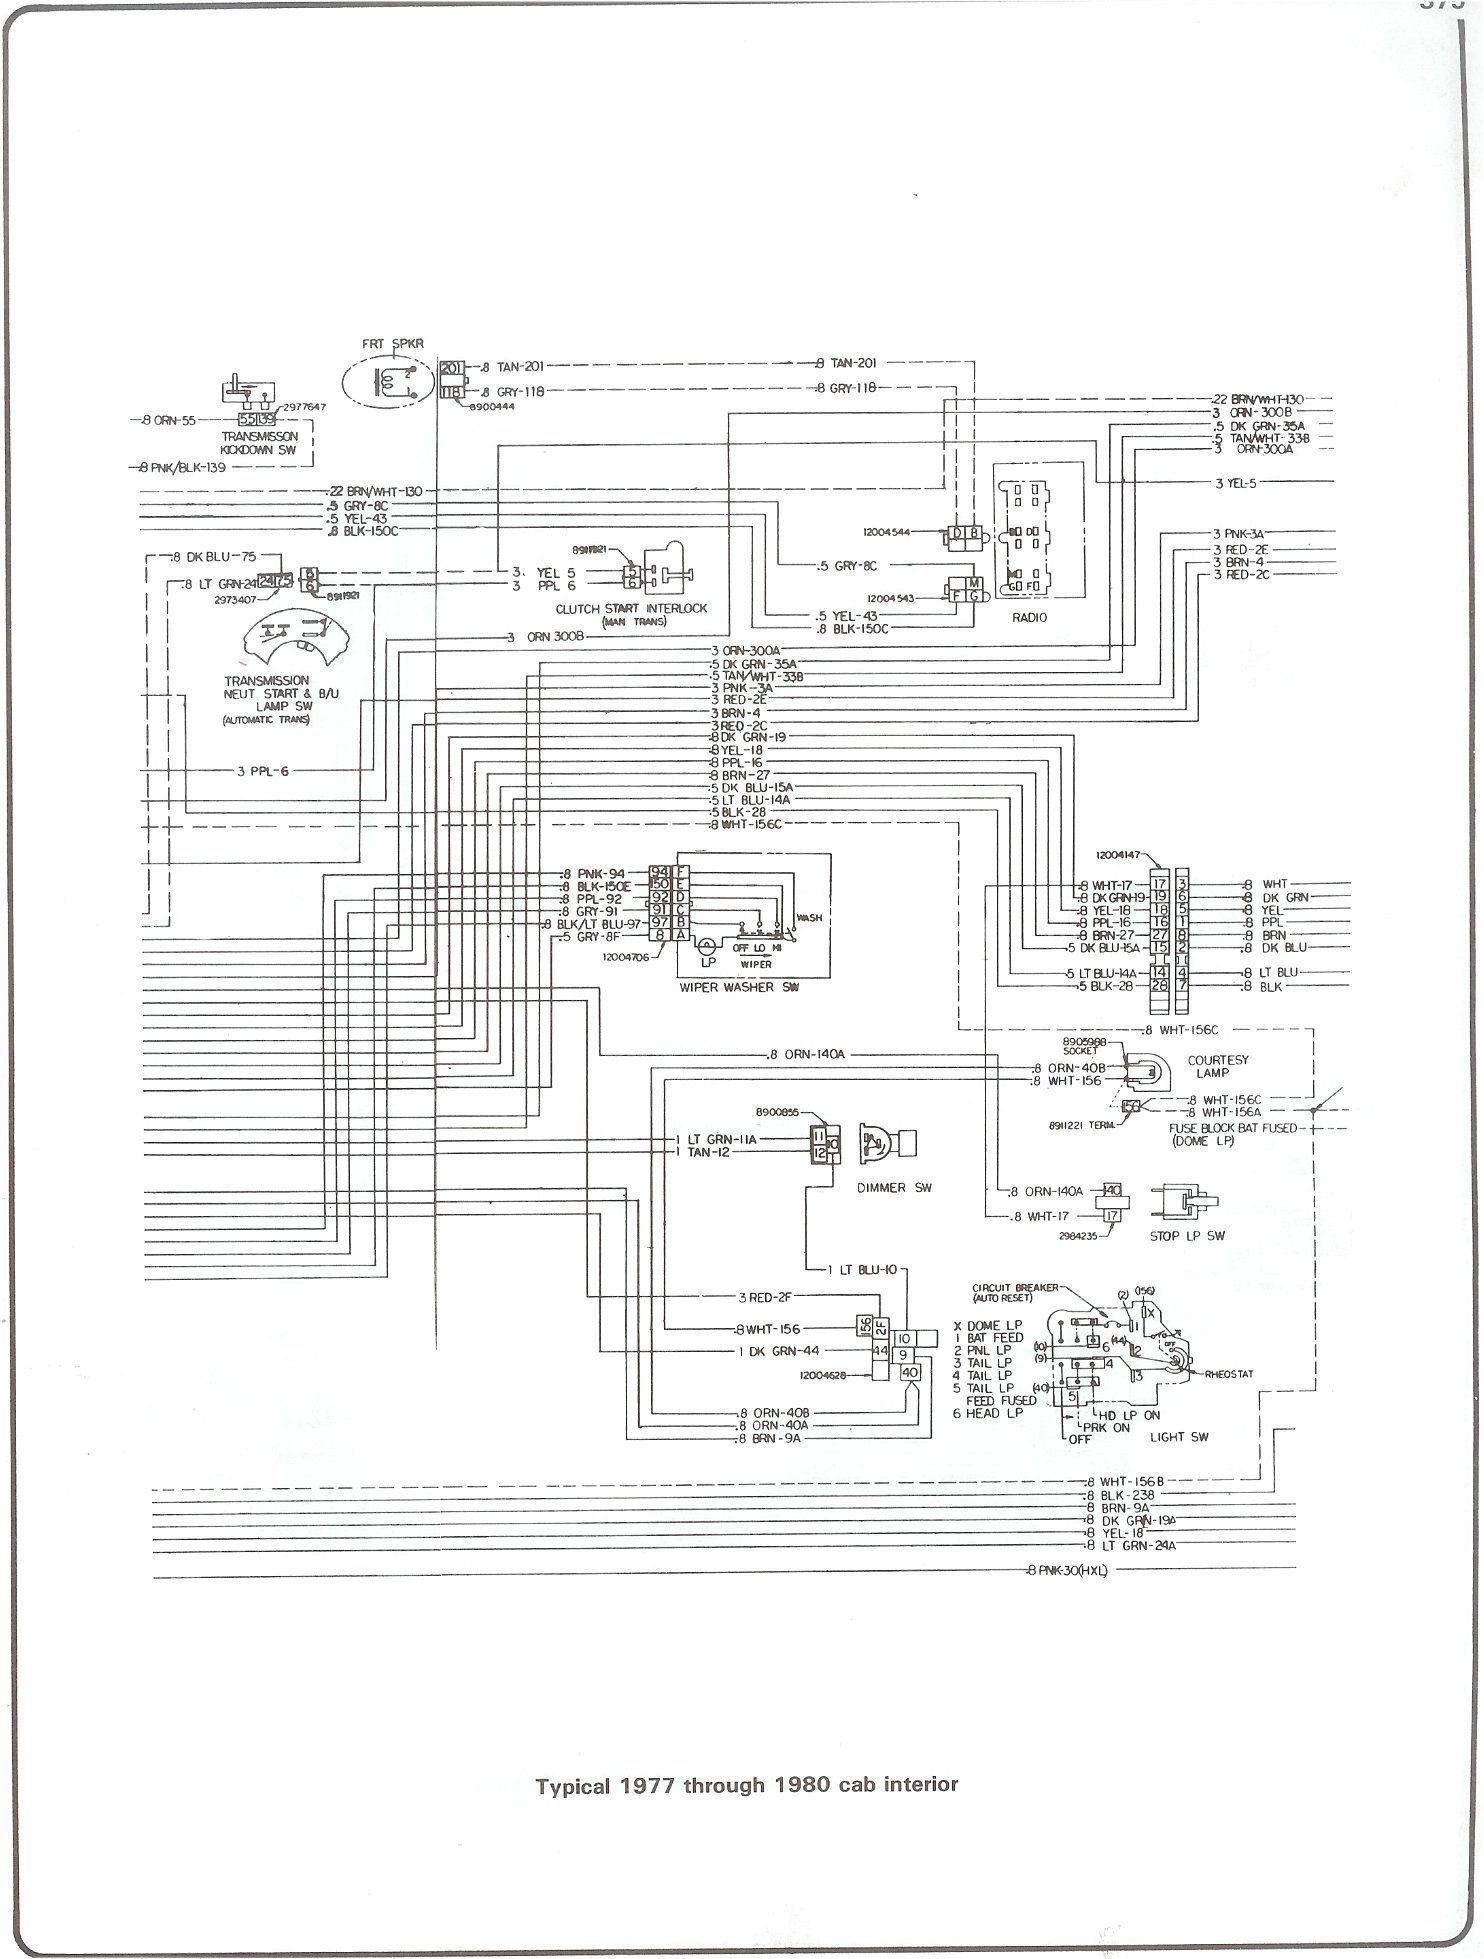 77 80_cab_inter complete 73 87 wiring diagrams Chevrolet Engine Wiring Diagram at gsmx.co